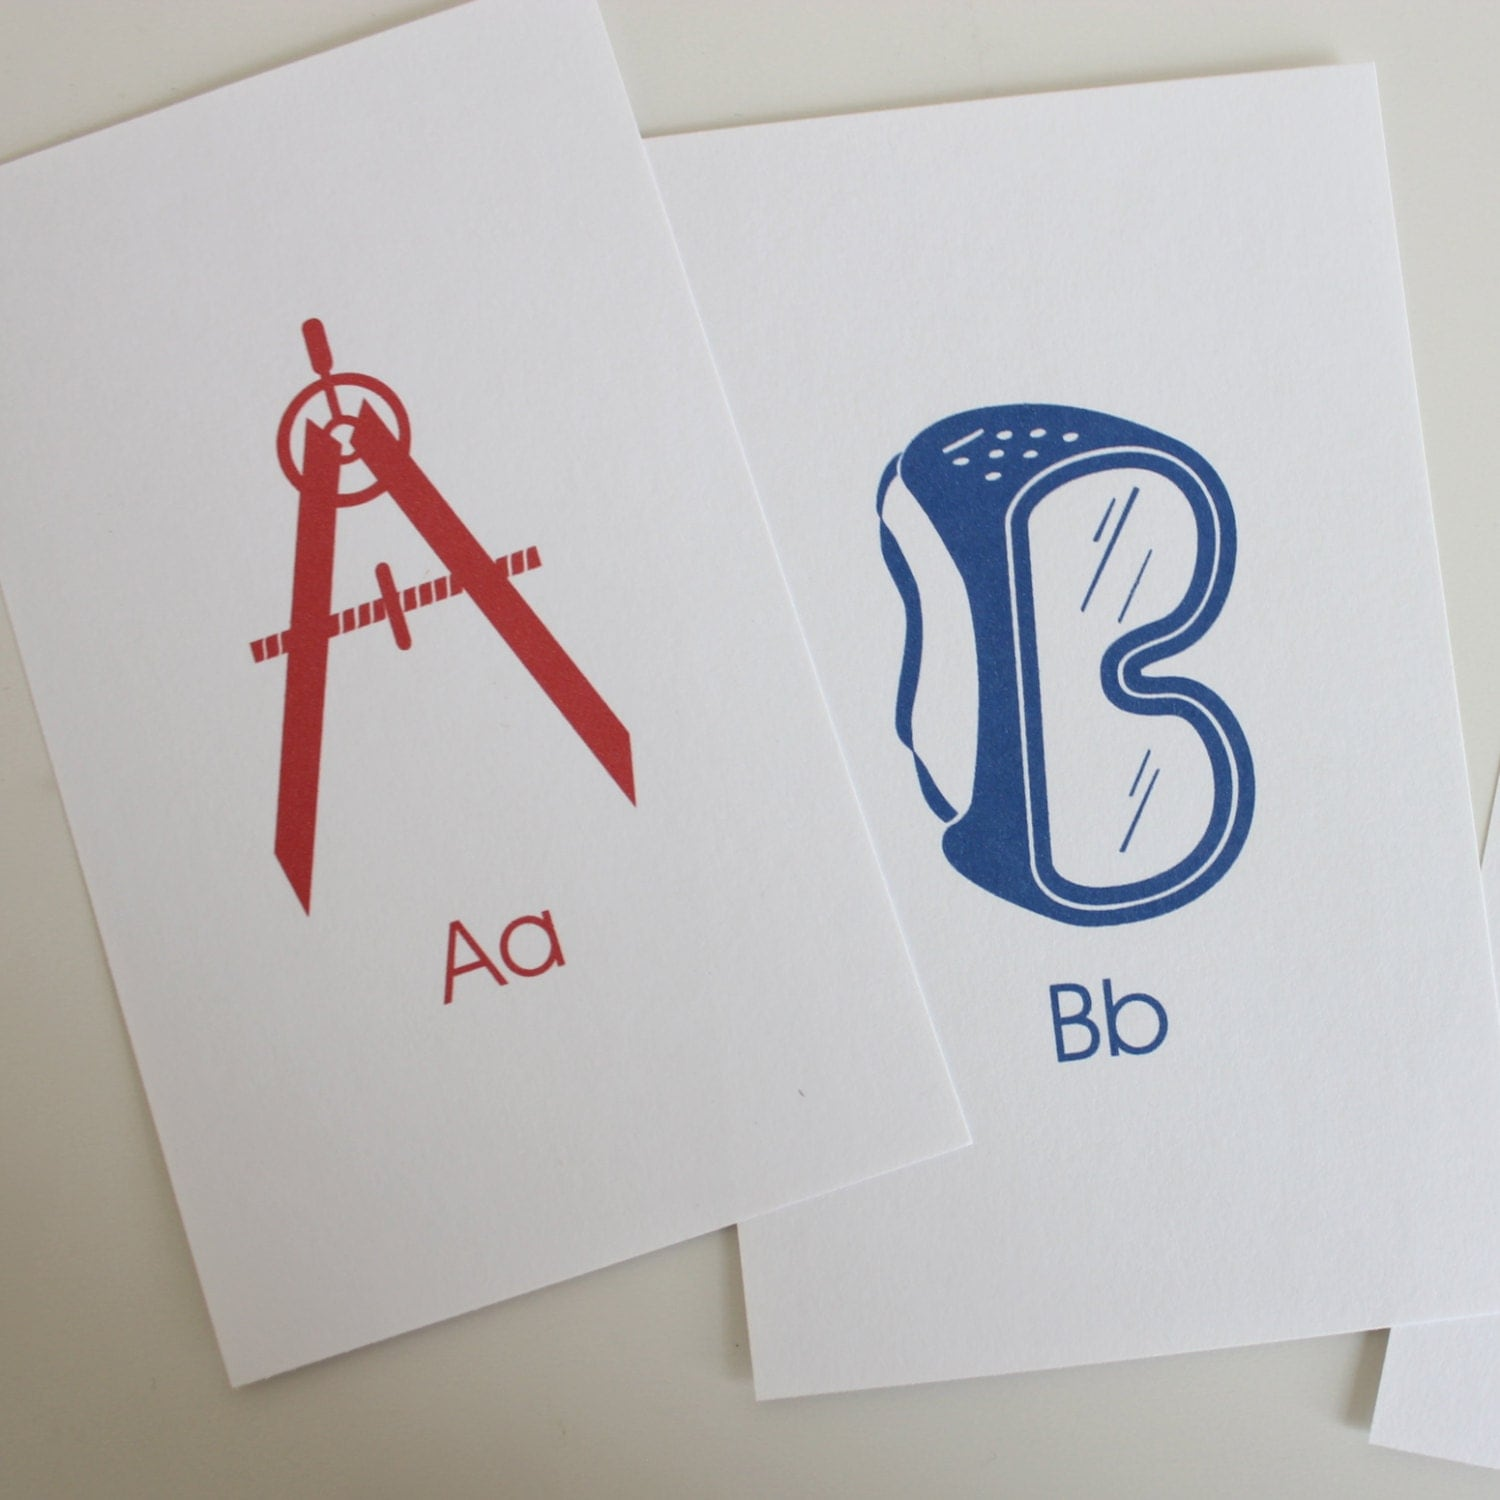 toolbox alphabet flash cards 3x5 printable pdf blue red